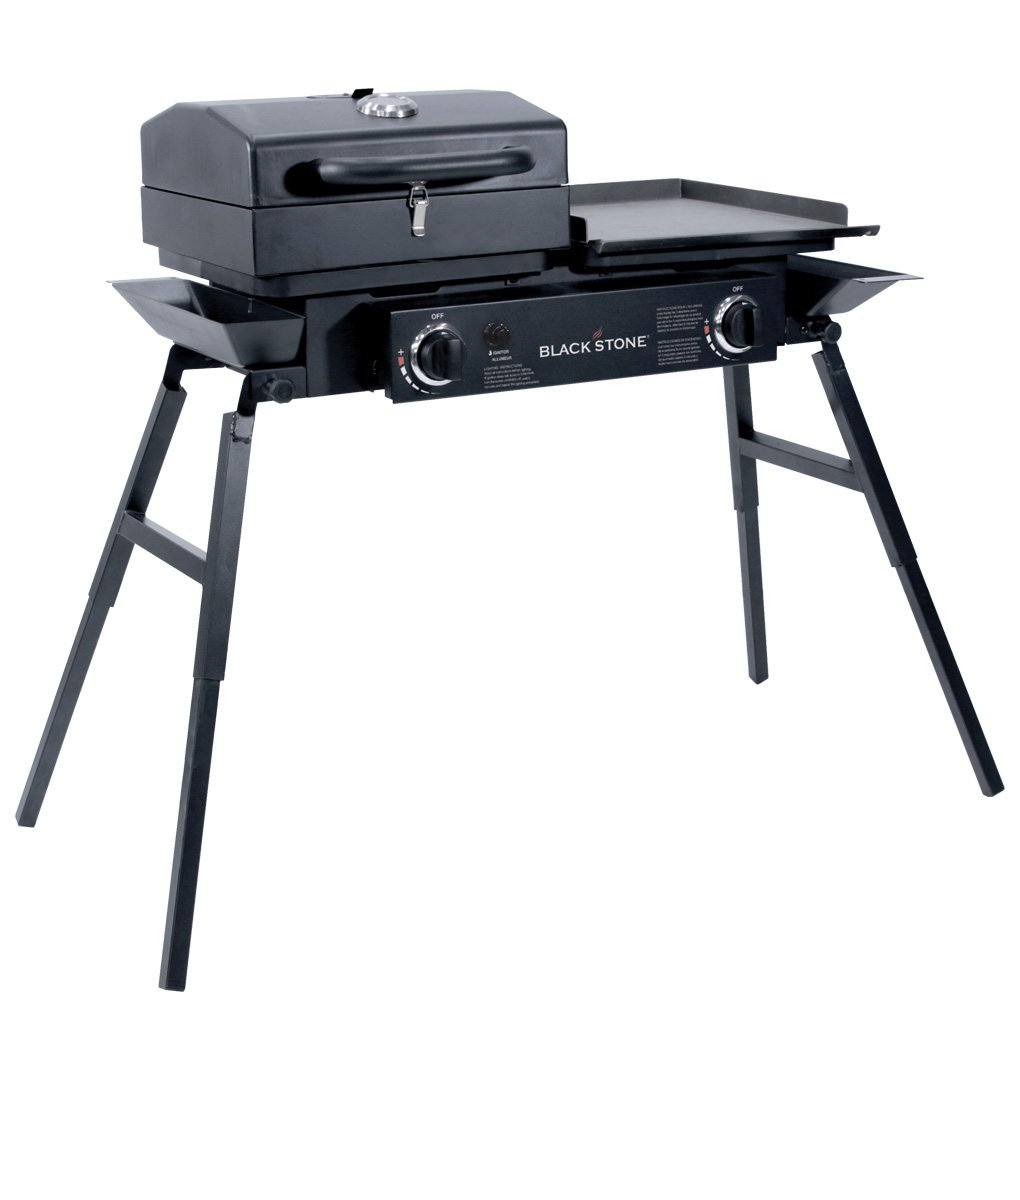 """Blackstone Grills Tailgater - Portable Gas Grill and Griddle Combo - Barbecue Box - Two Open Burners """" Griddle Top - Adjustable Legs - Camping Stove Great for Hunting, Fishing, Tailgating and More by Blackstone"""